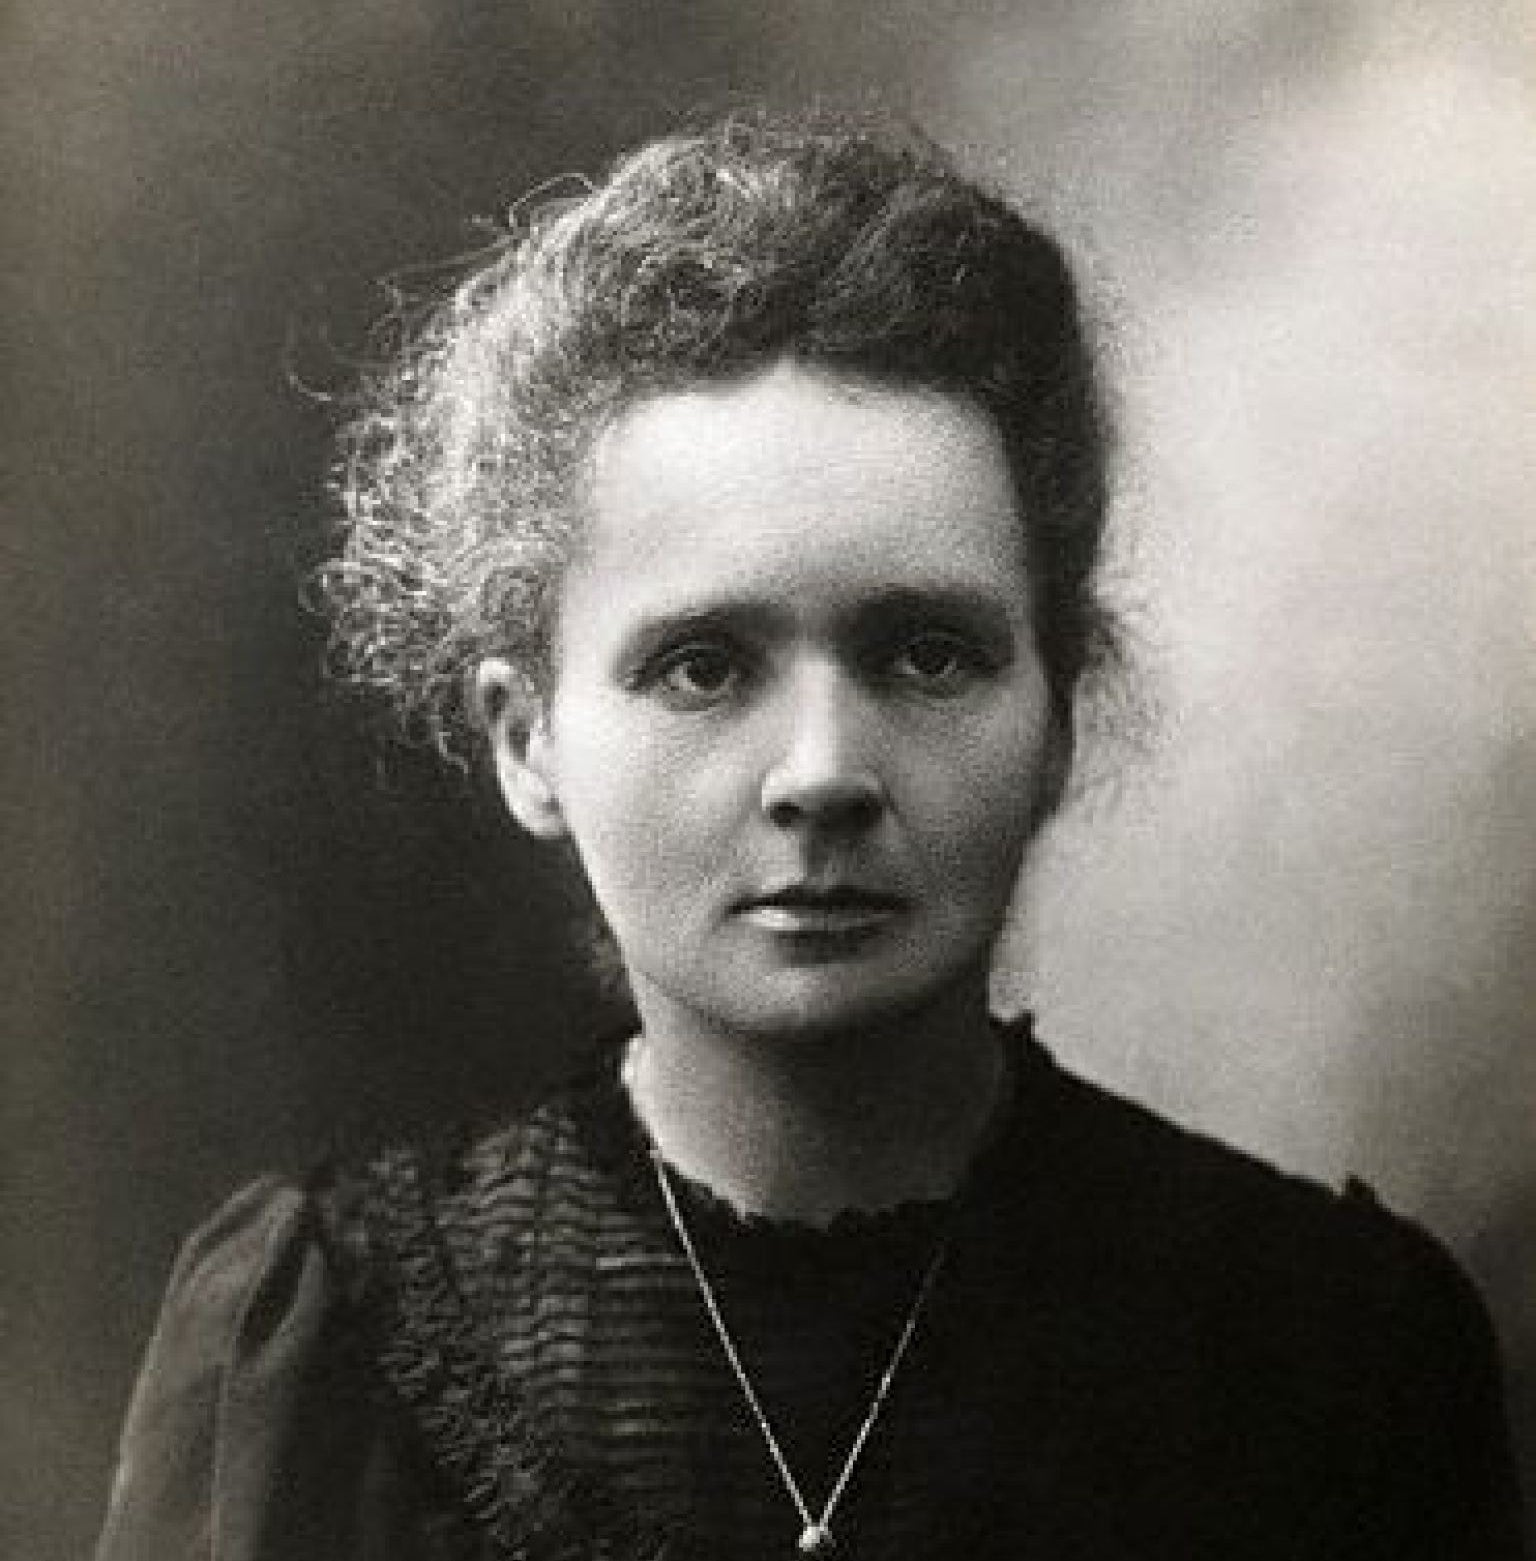 For anyone who isn't familiar with Marie Curie, she was a Polish-born French physicist and chemist who won the Nobel Prize twice for research on radioactivity.